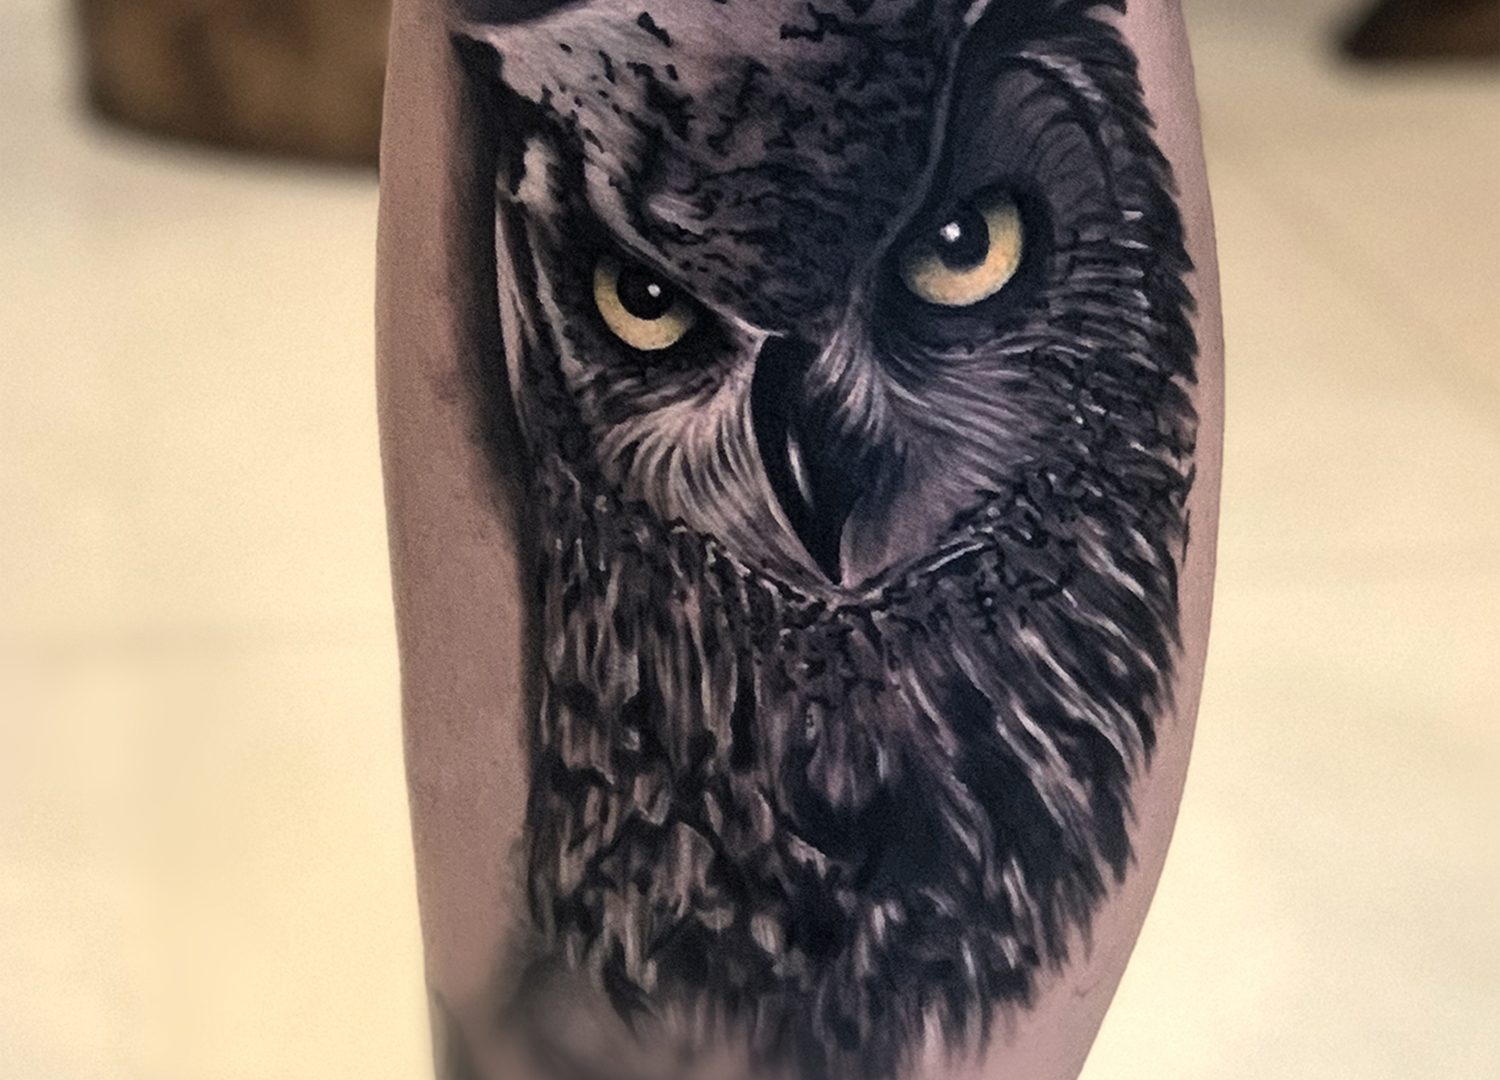 Owl Tattoo Done By Mukesh Waghela At Moksha Tattoo Studio Goa India ...